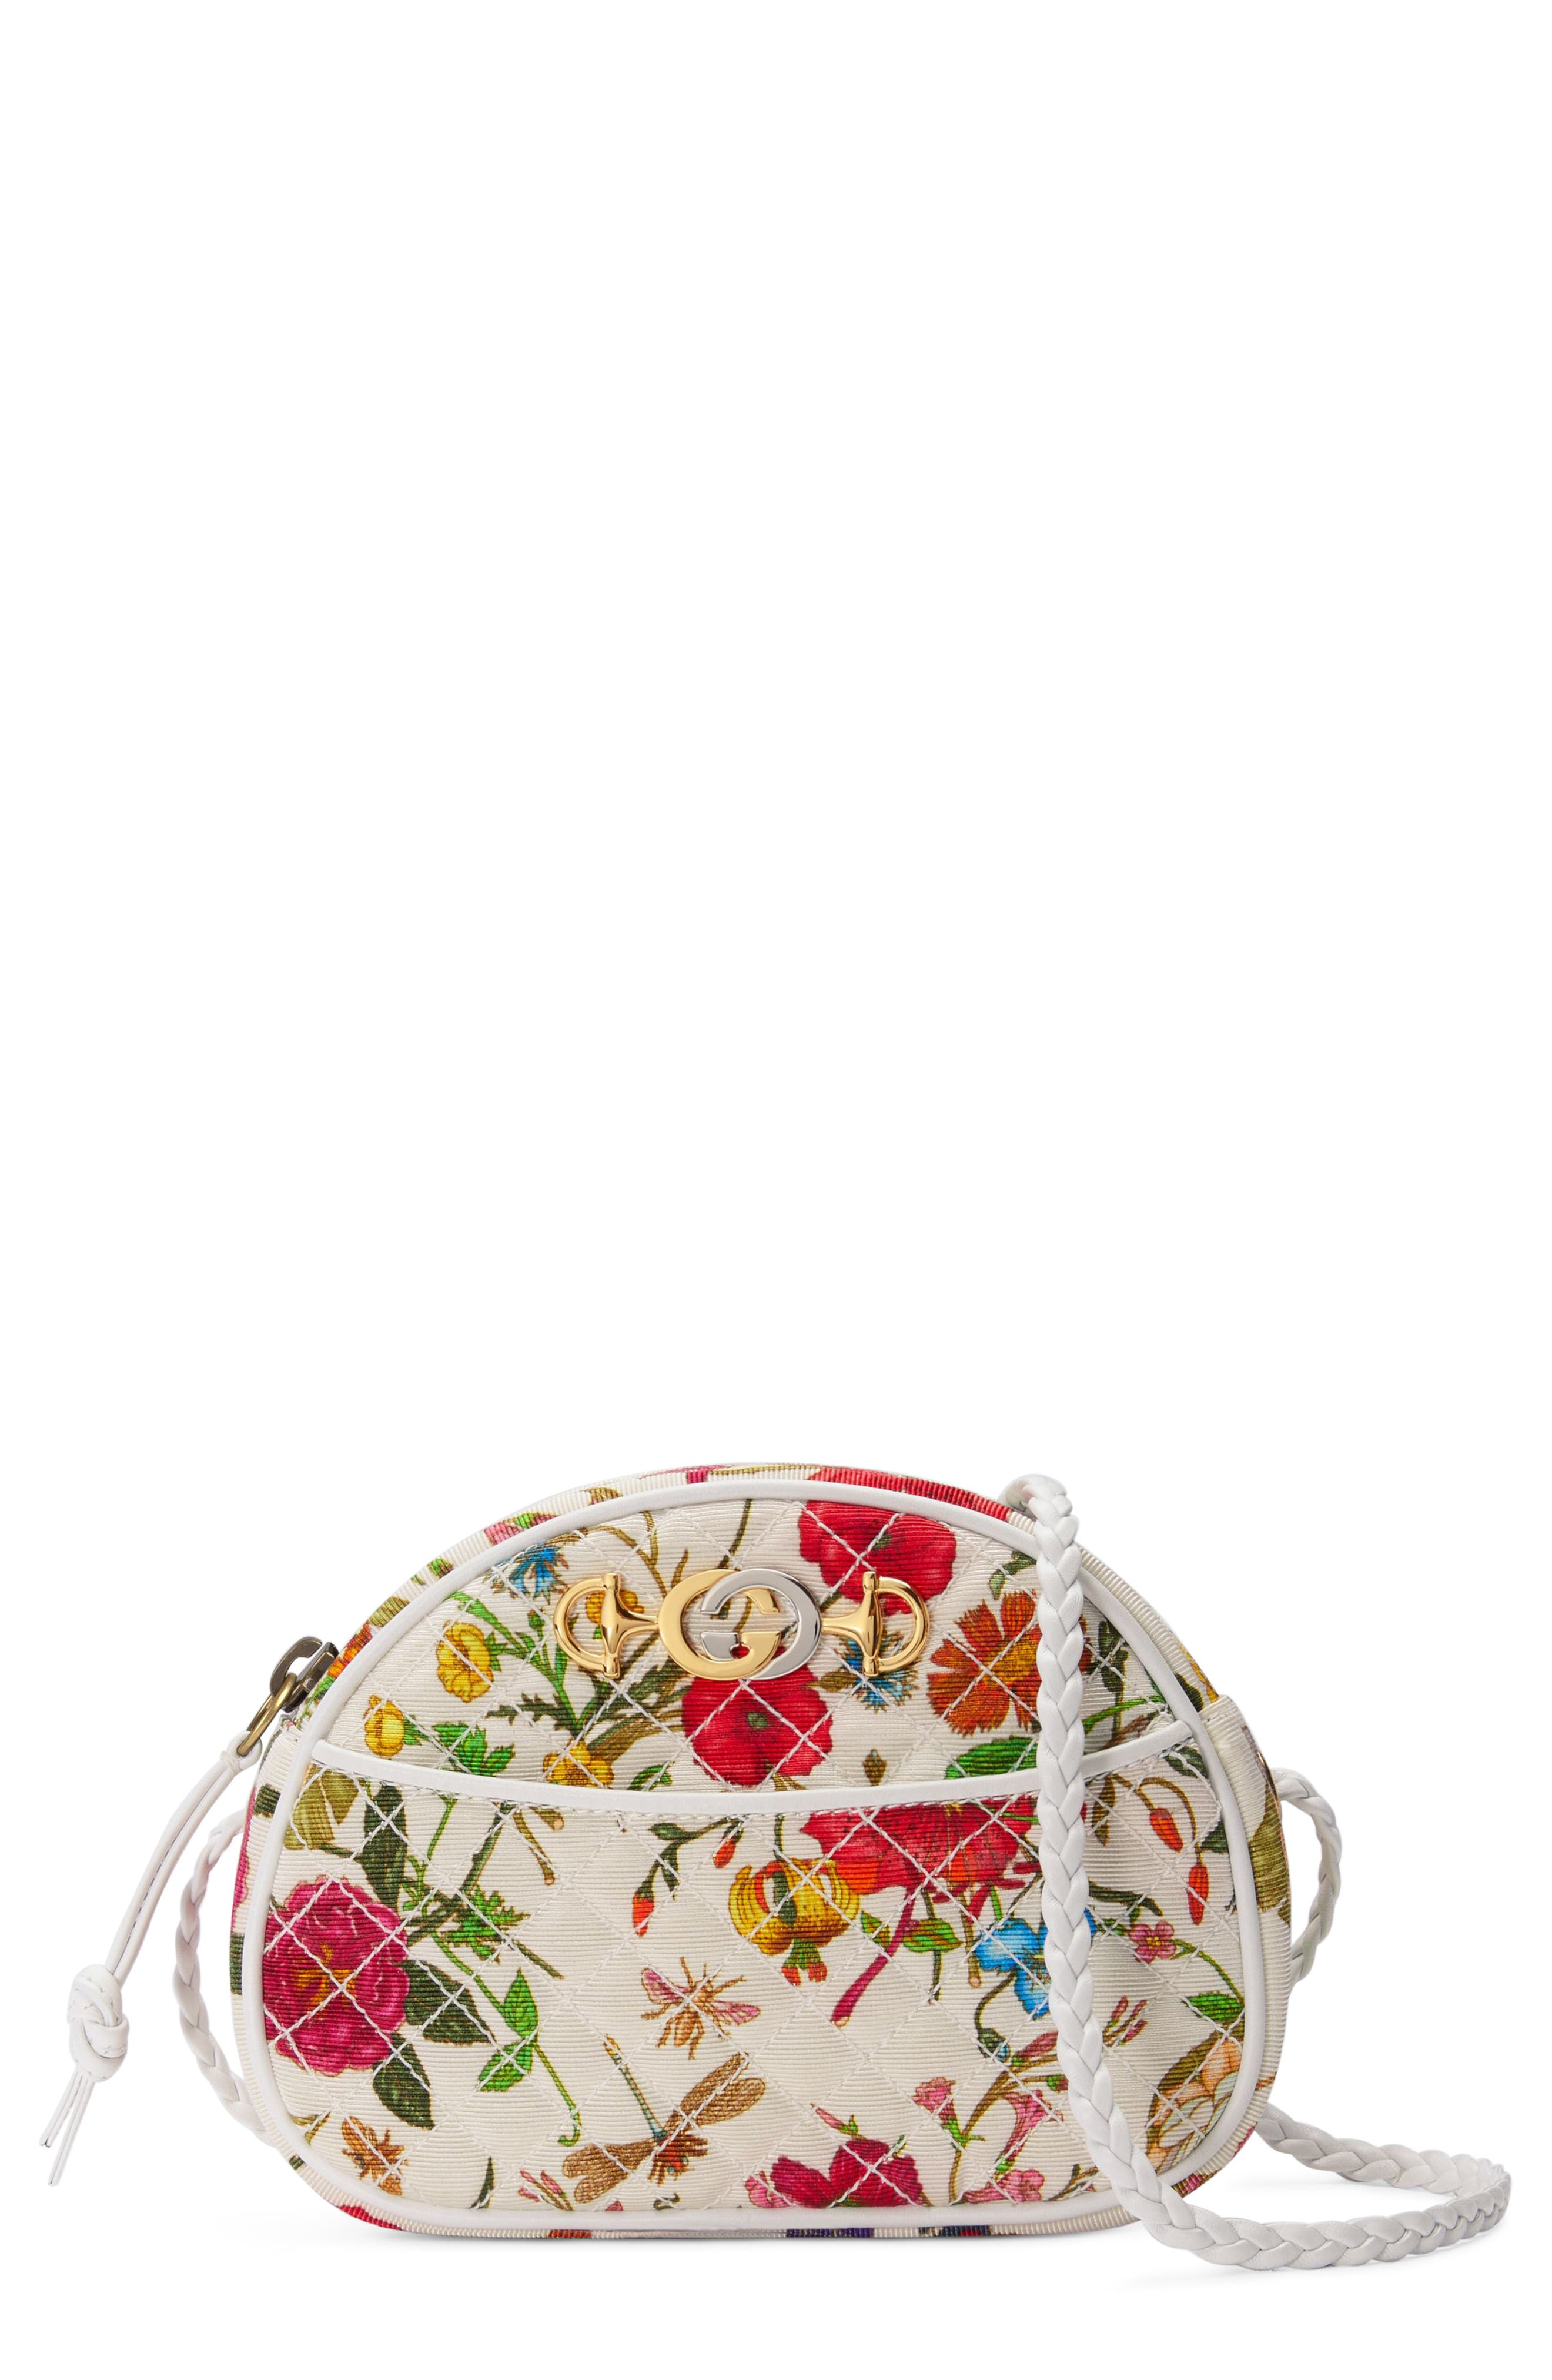 Quilted Floral Print Dome Crossbody Bag,                             Main thumbnail 1, color,                             WHITE MULTI